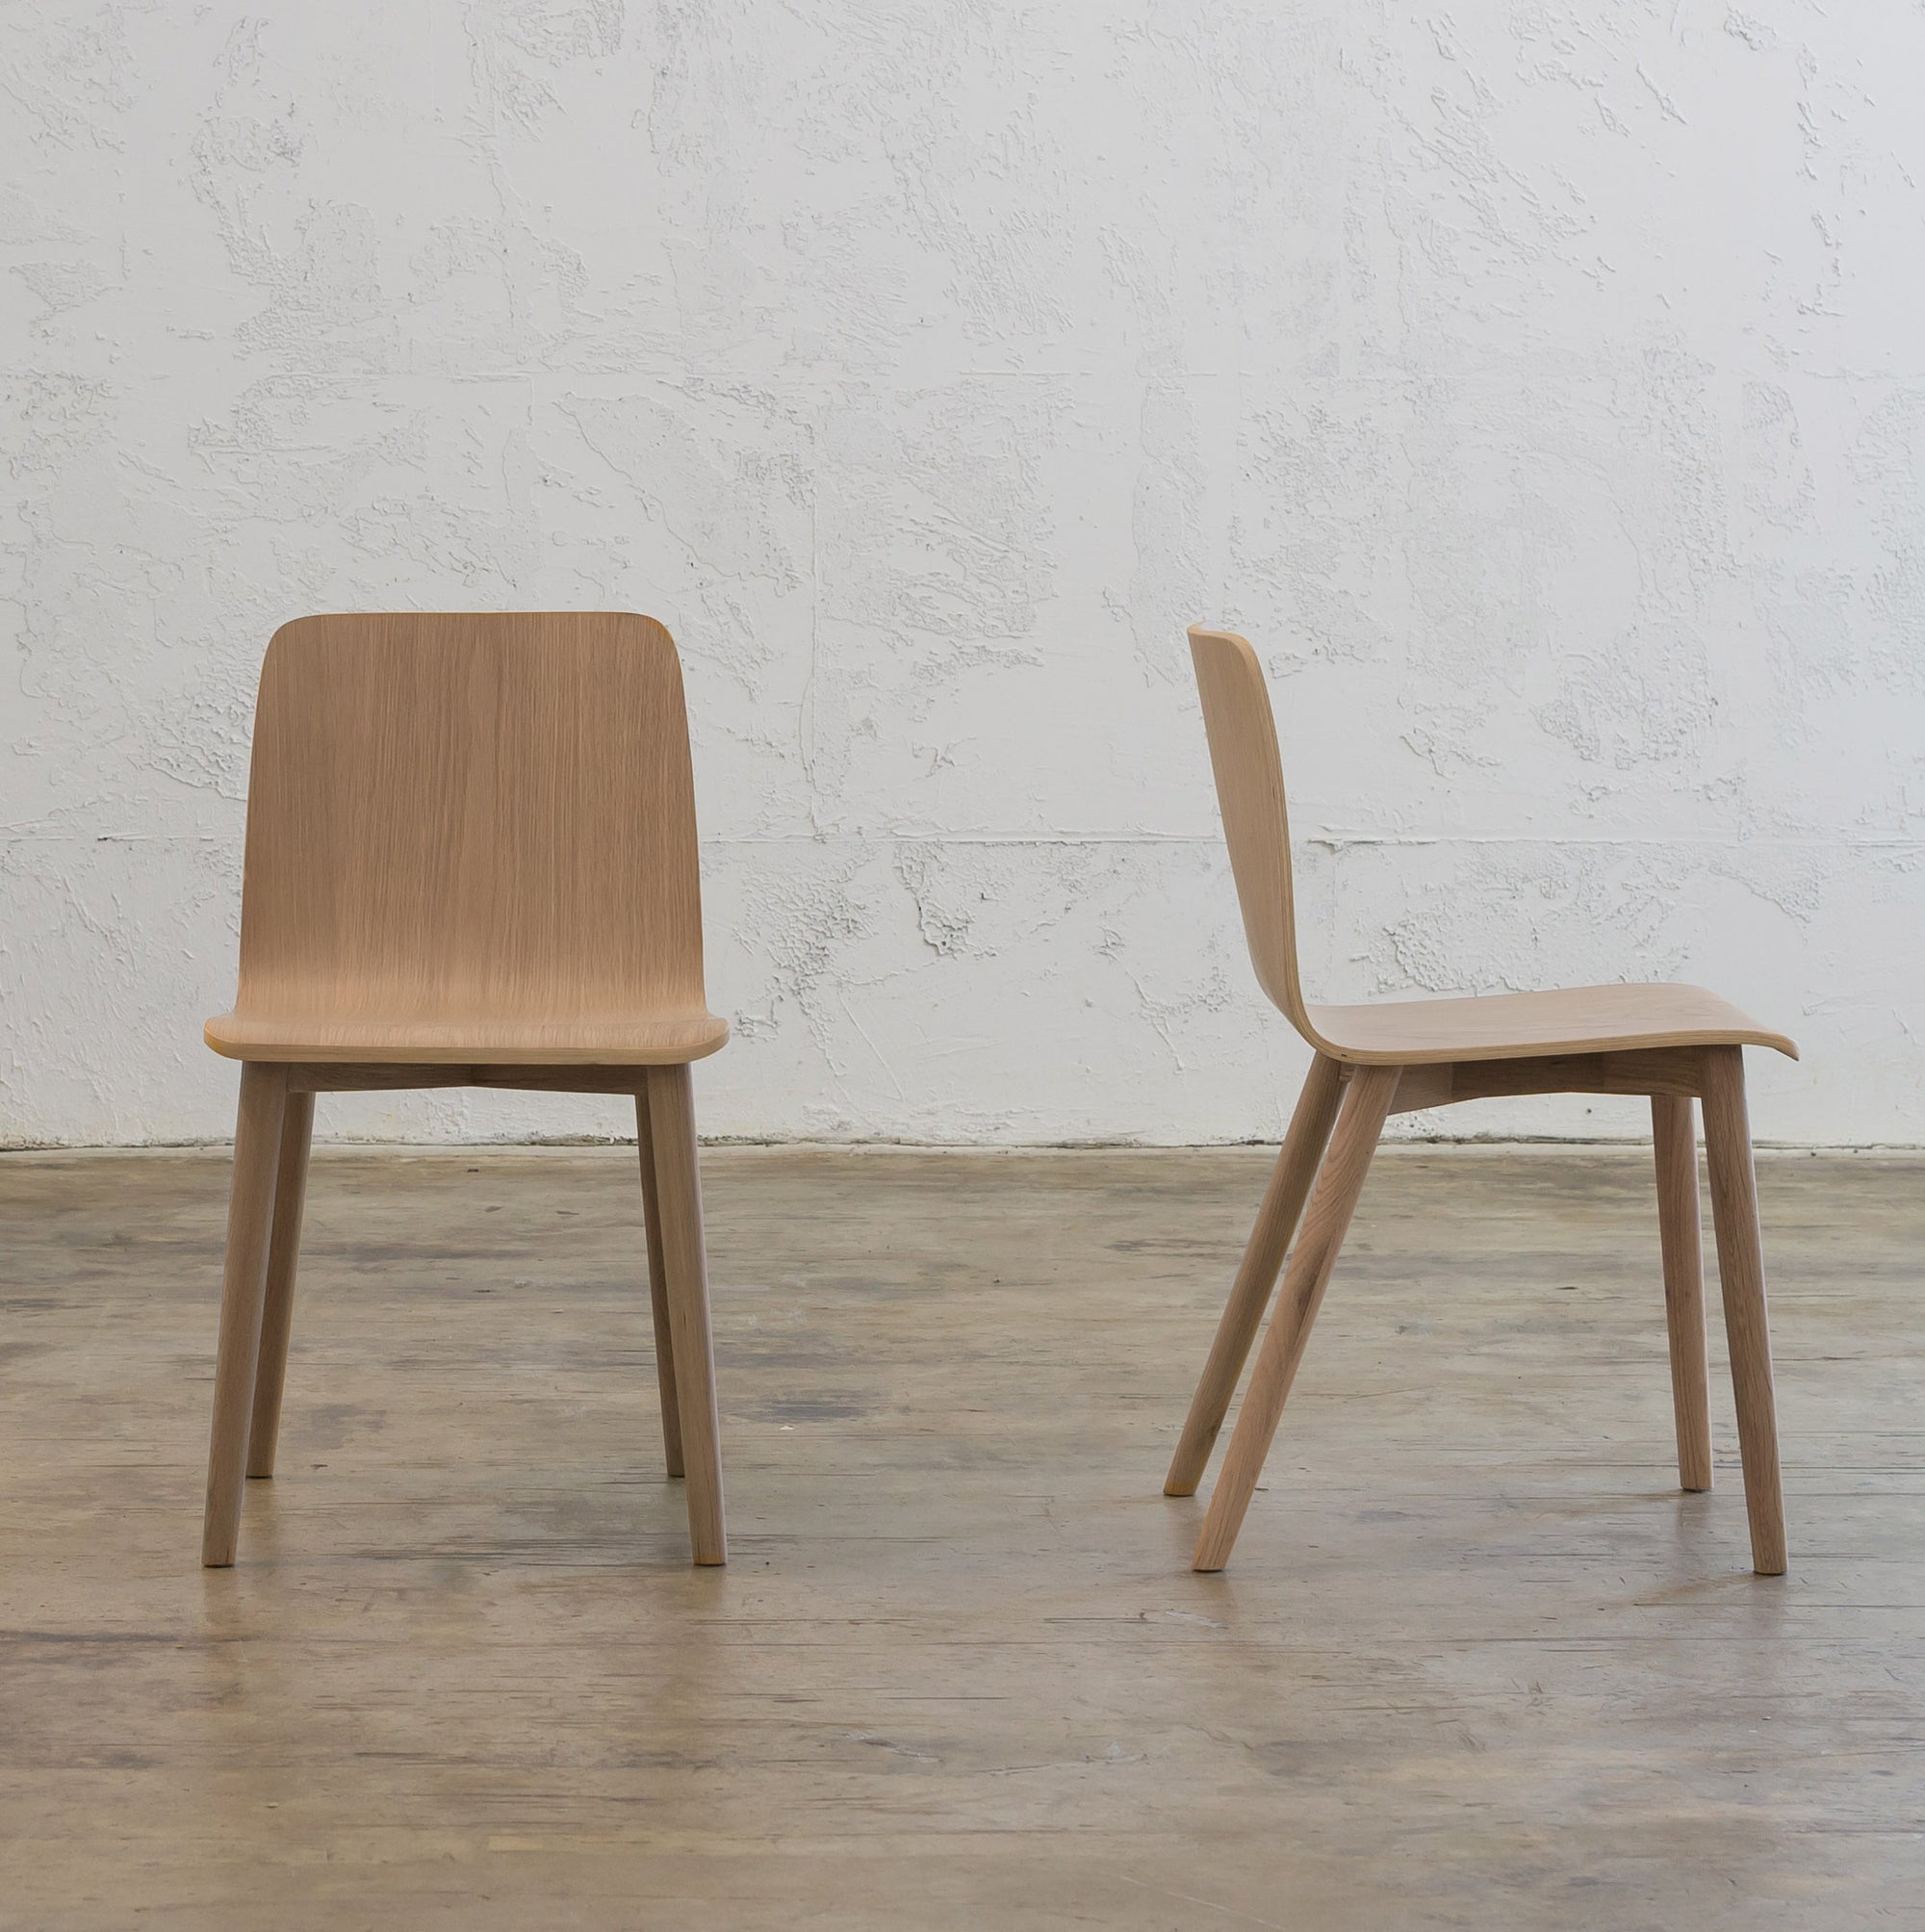 TAMEIRA DINING CHAIR  |  NATURAL OAK  |  DANISH DESIGN  |  TAMI DINING CHAIR